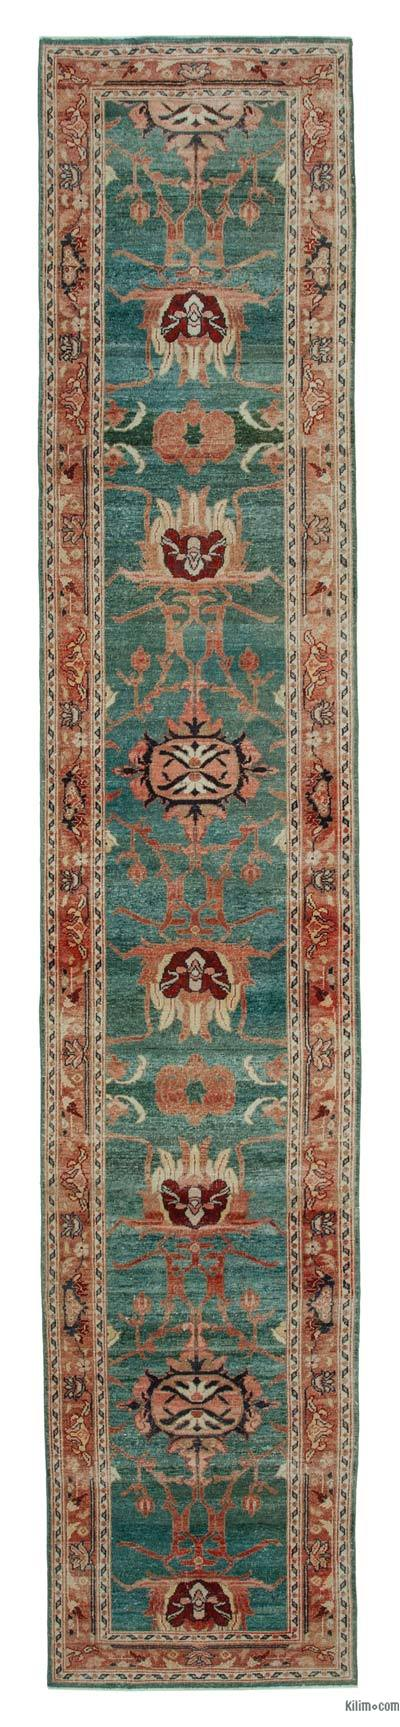 "New Oushak Runner Rug - 2' 6"" x 13' 7"" (30 in. x 163 in.)"